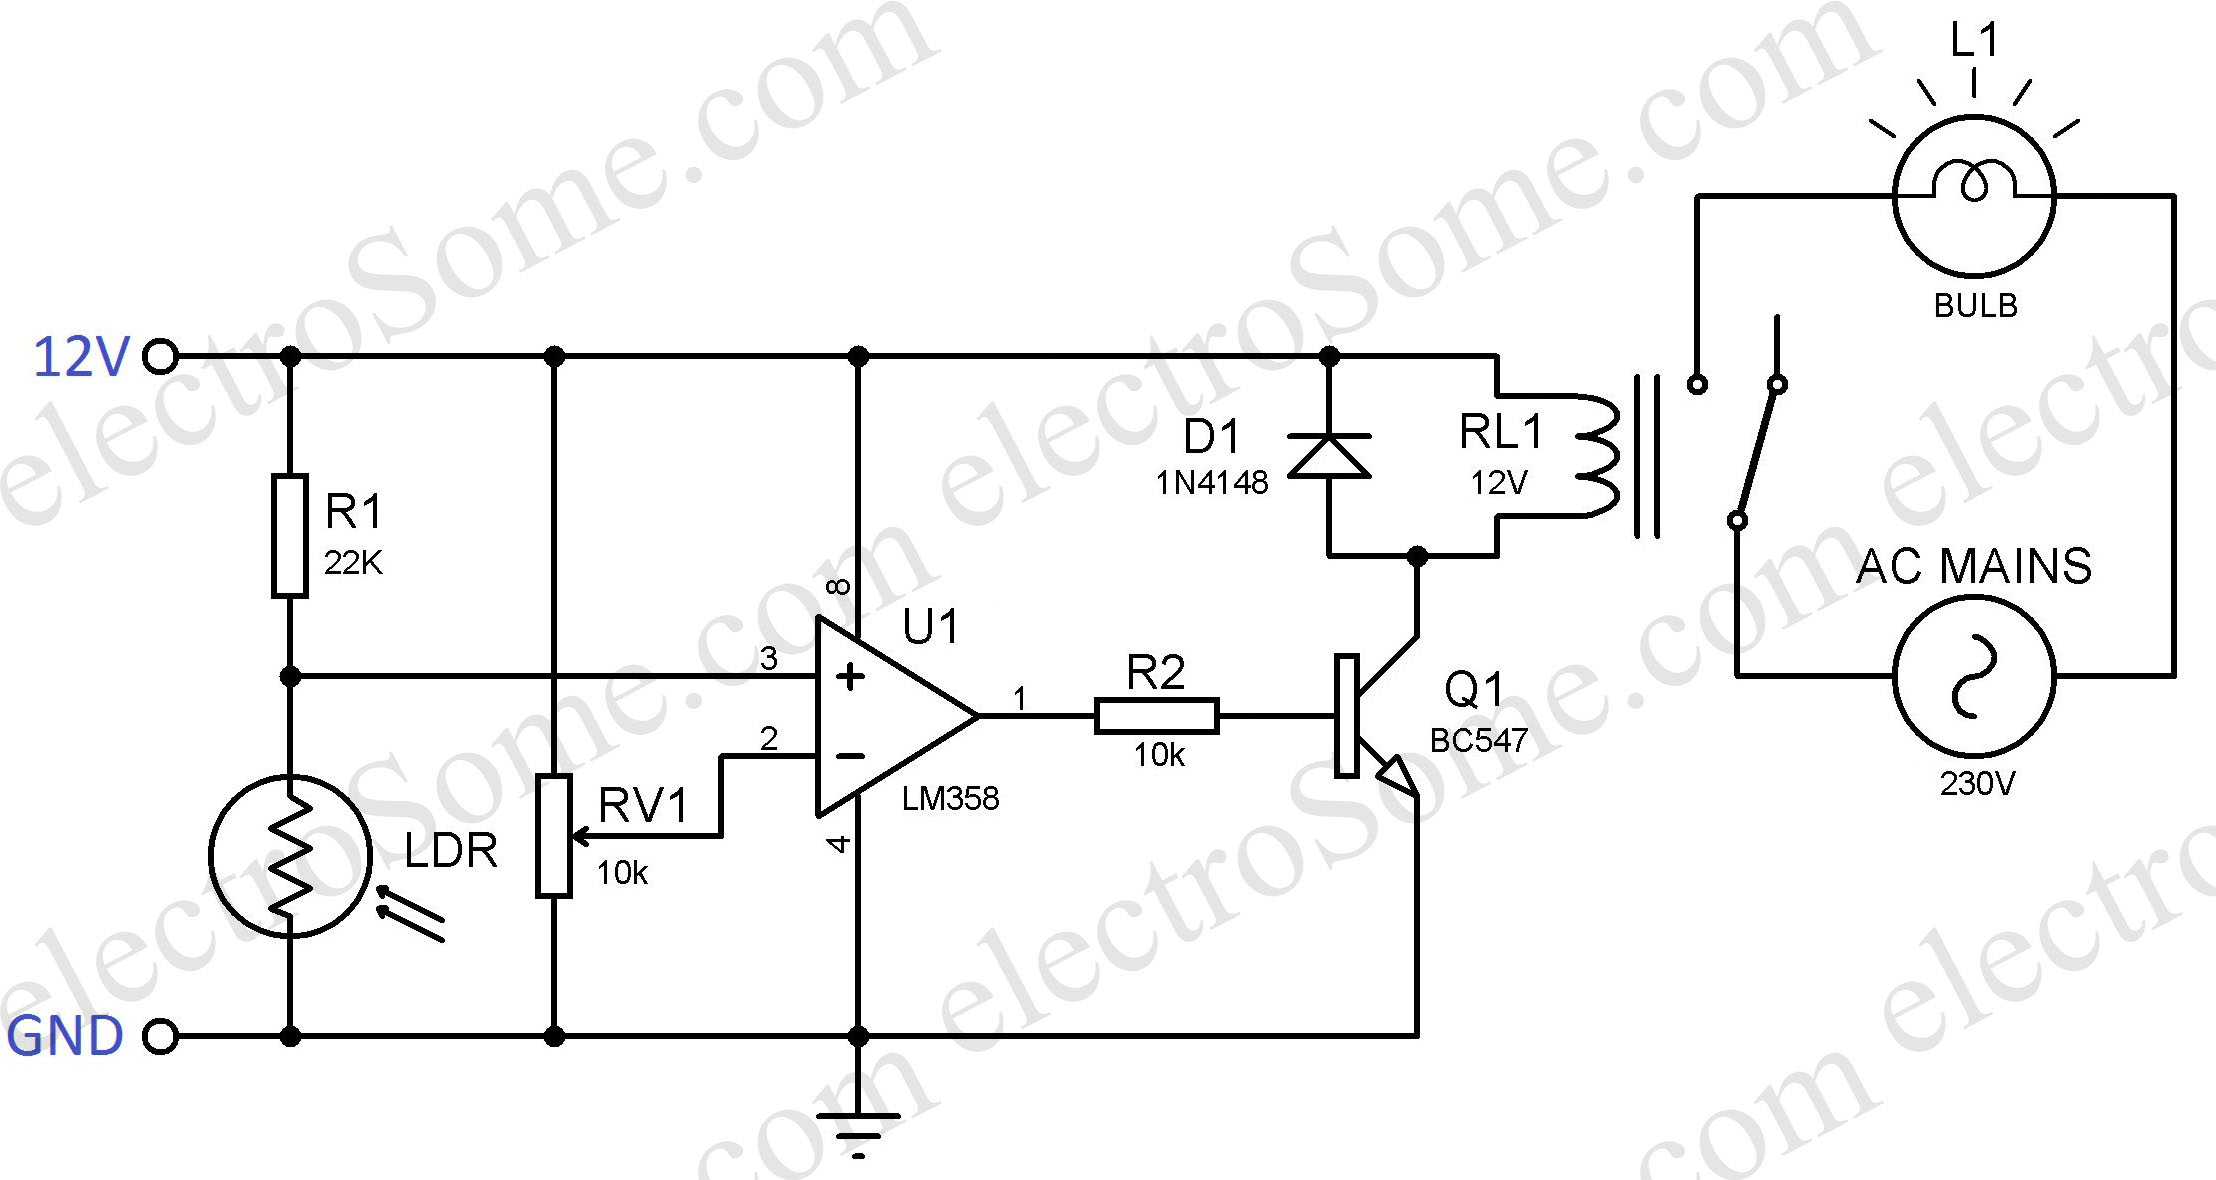 Single Line Diagrams furthermore PresentacionPropiedadSocial as well Bridge Rectifier Circuit Theory With Working Operation in addition Bosch Relay 12v 30a Wiring Diagram Inside Bosch Relay Wiring Diagram as well 15433. on ac wiring diagram